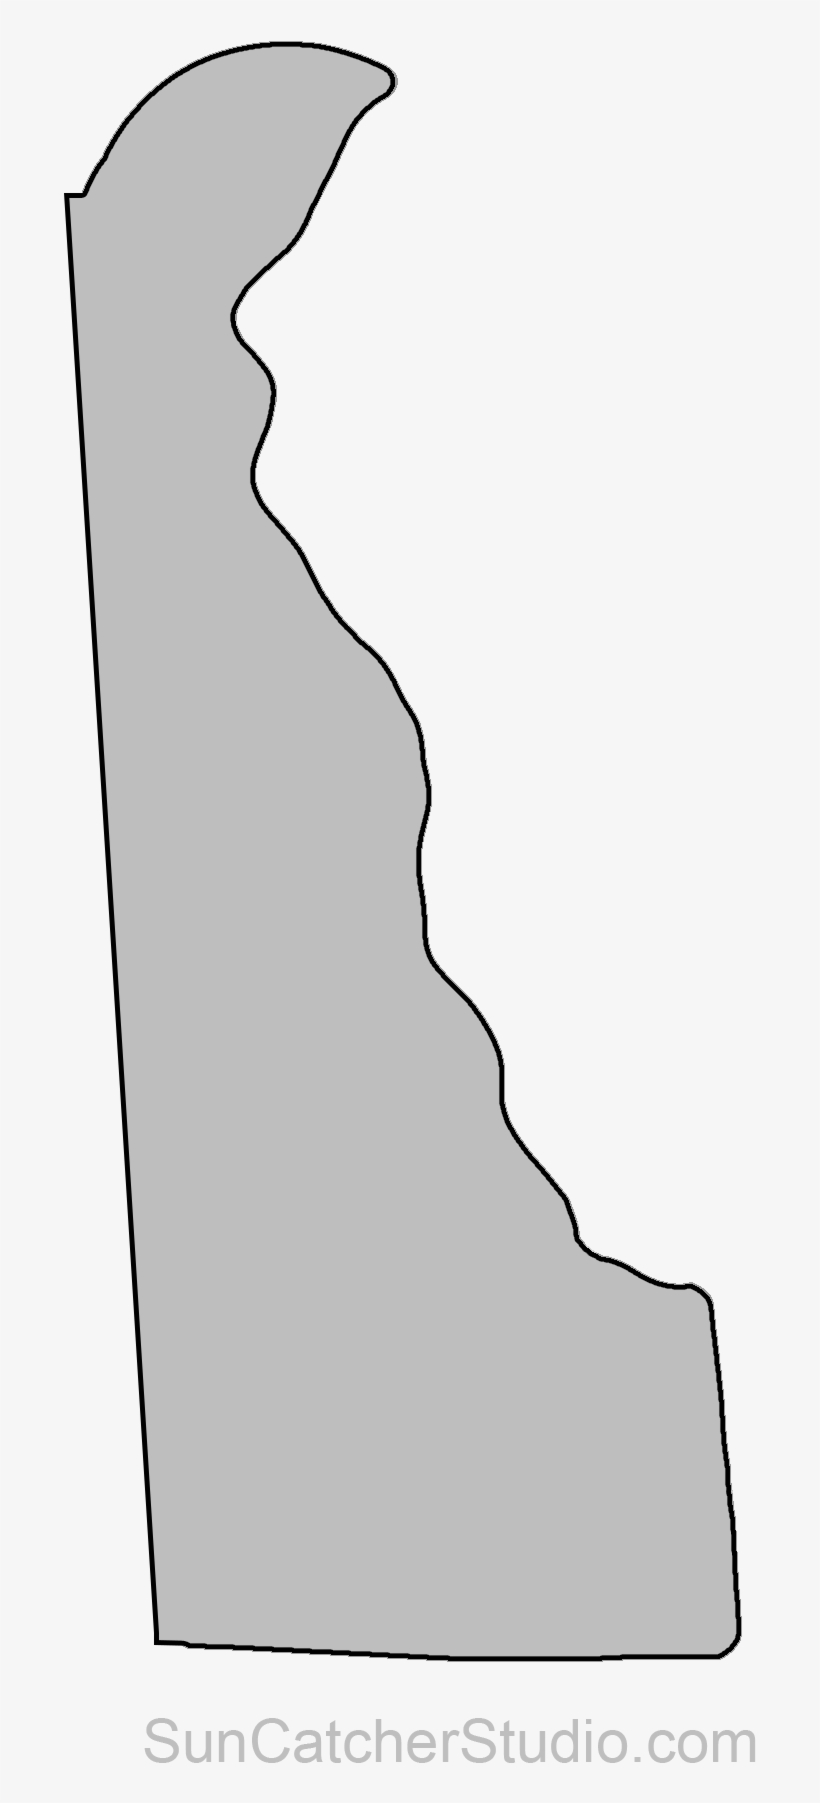 on delaware state map